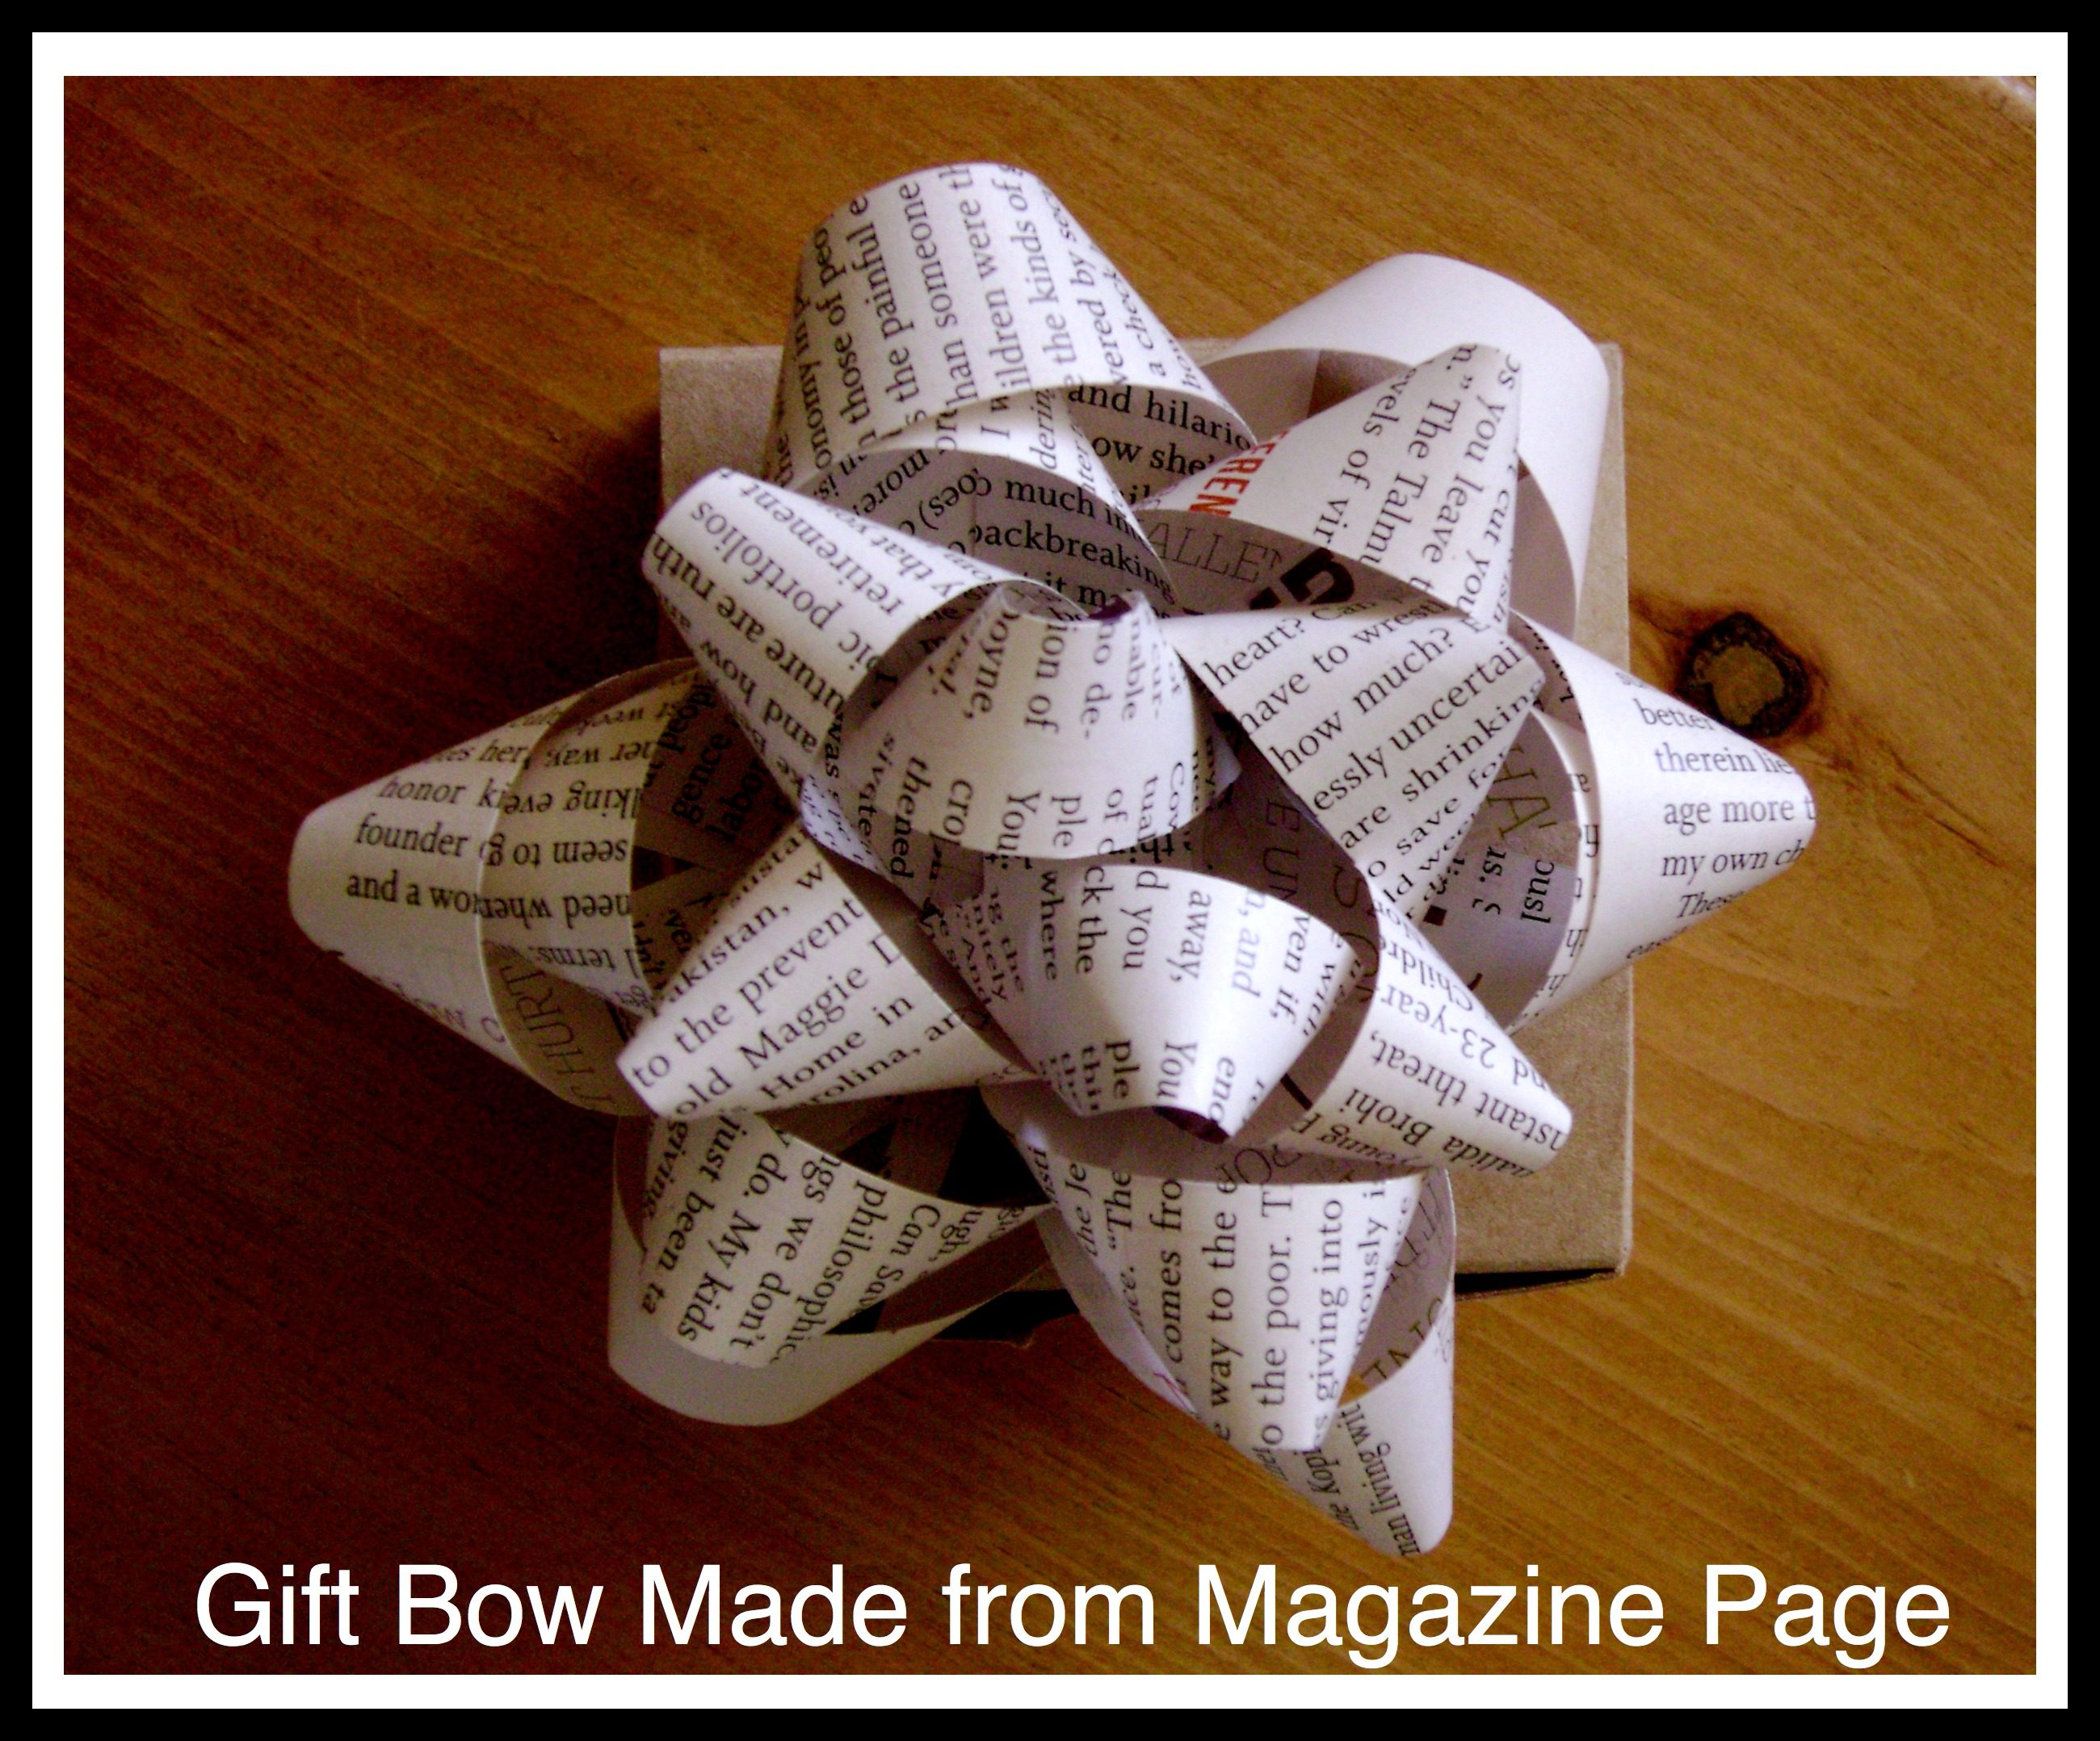 Do it yourself gift bow cha ching queen gift bow made from magazine page solutioingenieria Images